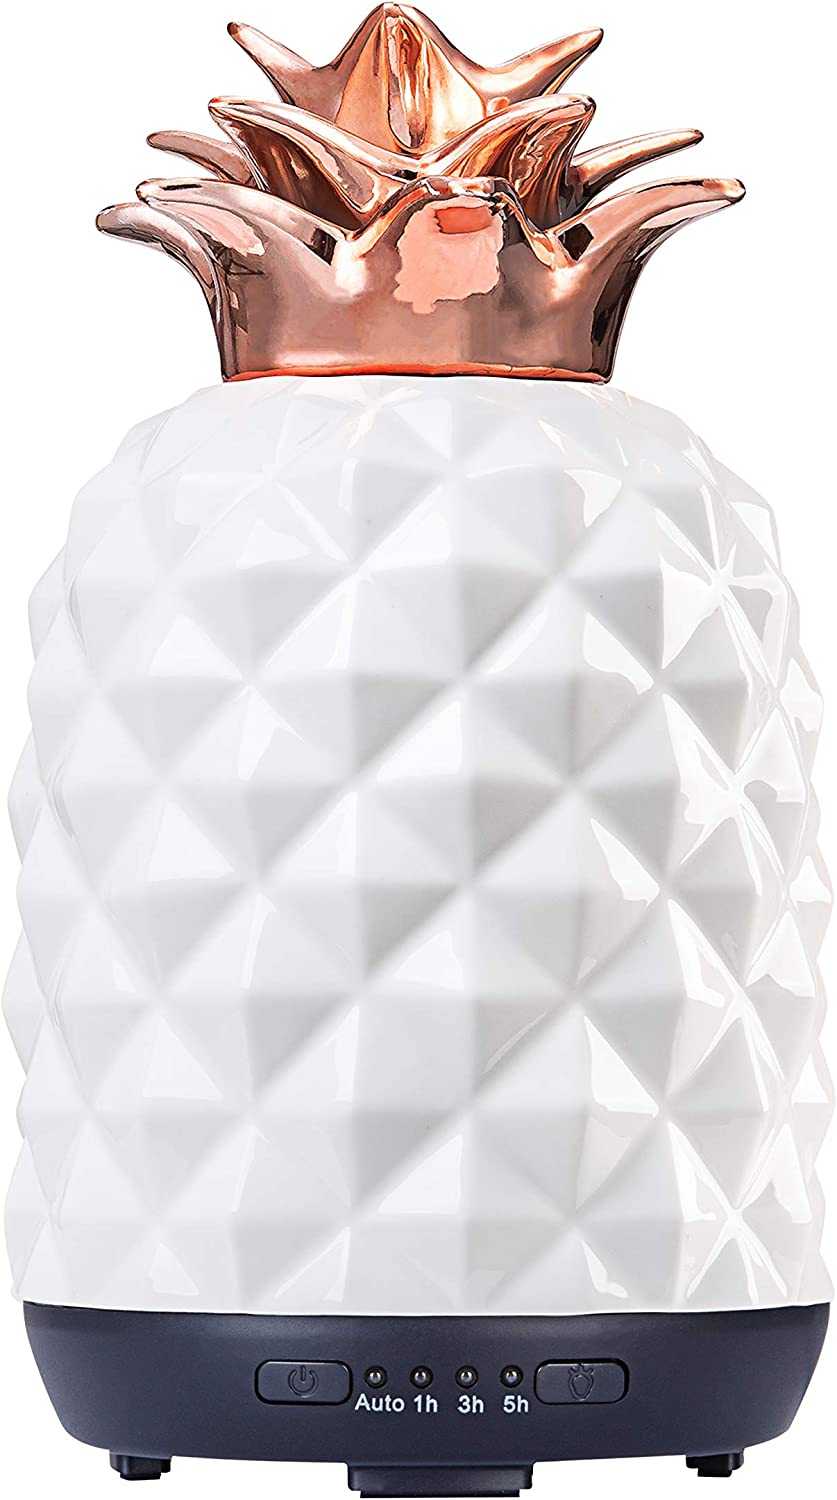 Aromatherapy Essential Oil Diffuser COOSA 250ml Ceramic Handmade Pineapple Home Decoration Cool Mist Humidifier with Color Changing Light Waterless Auto Shut-Off for Deco Baby Office Yoga